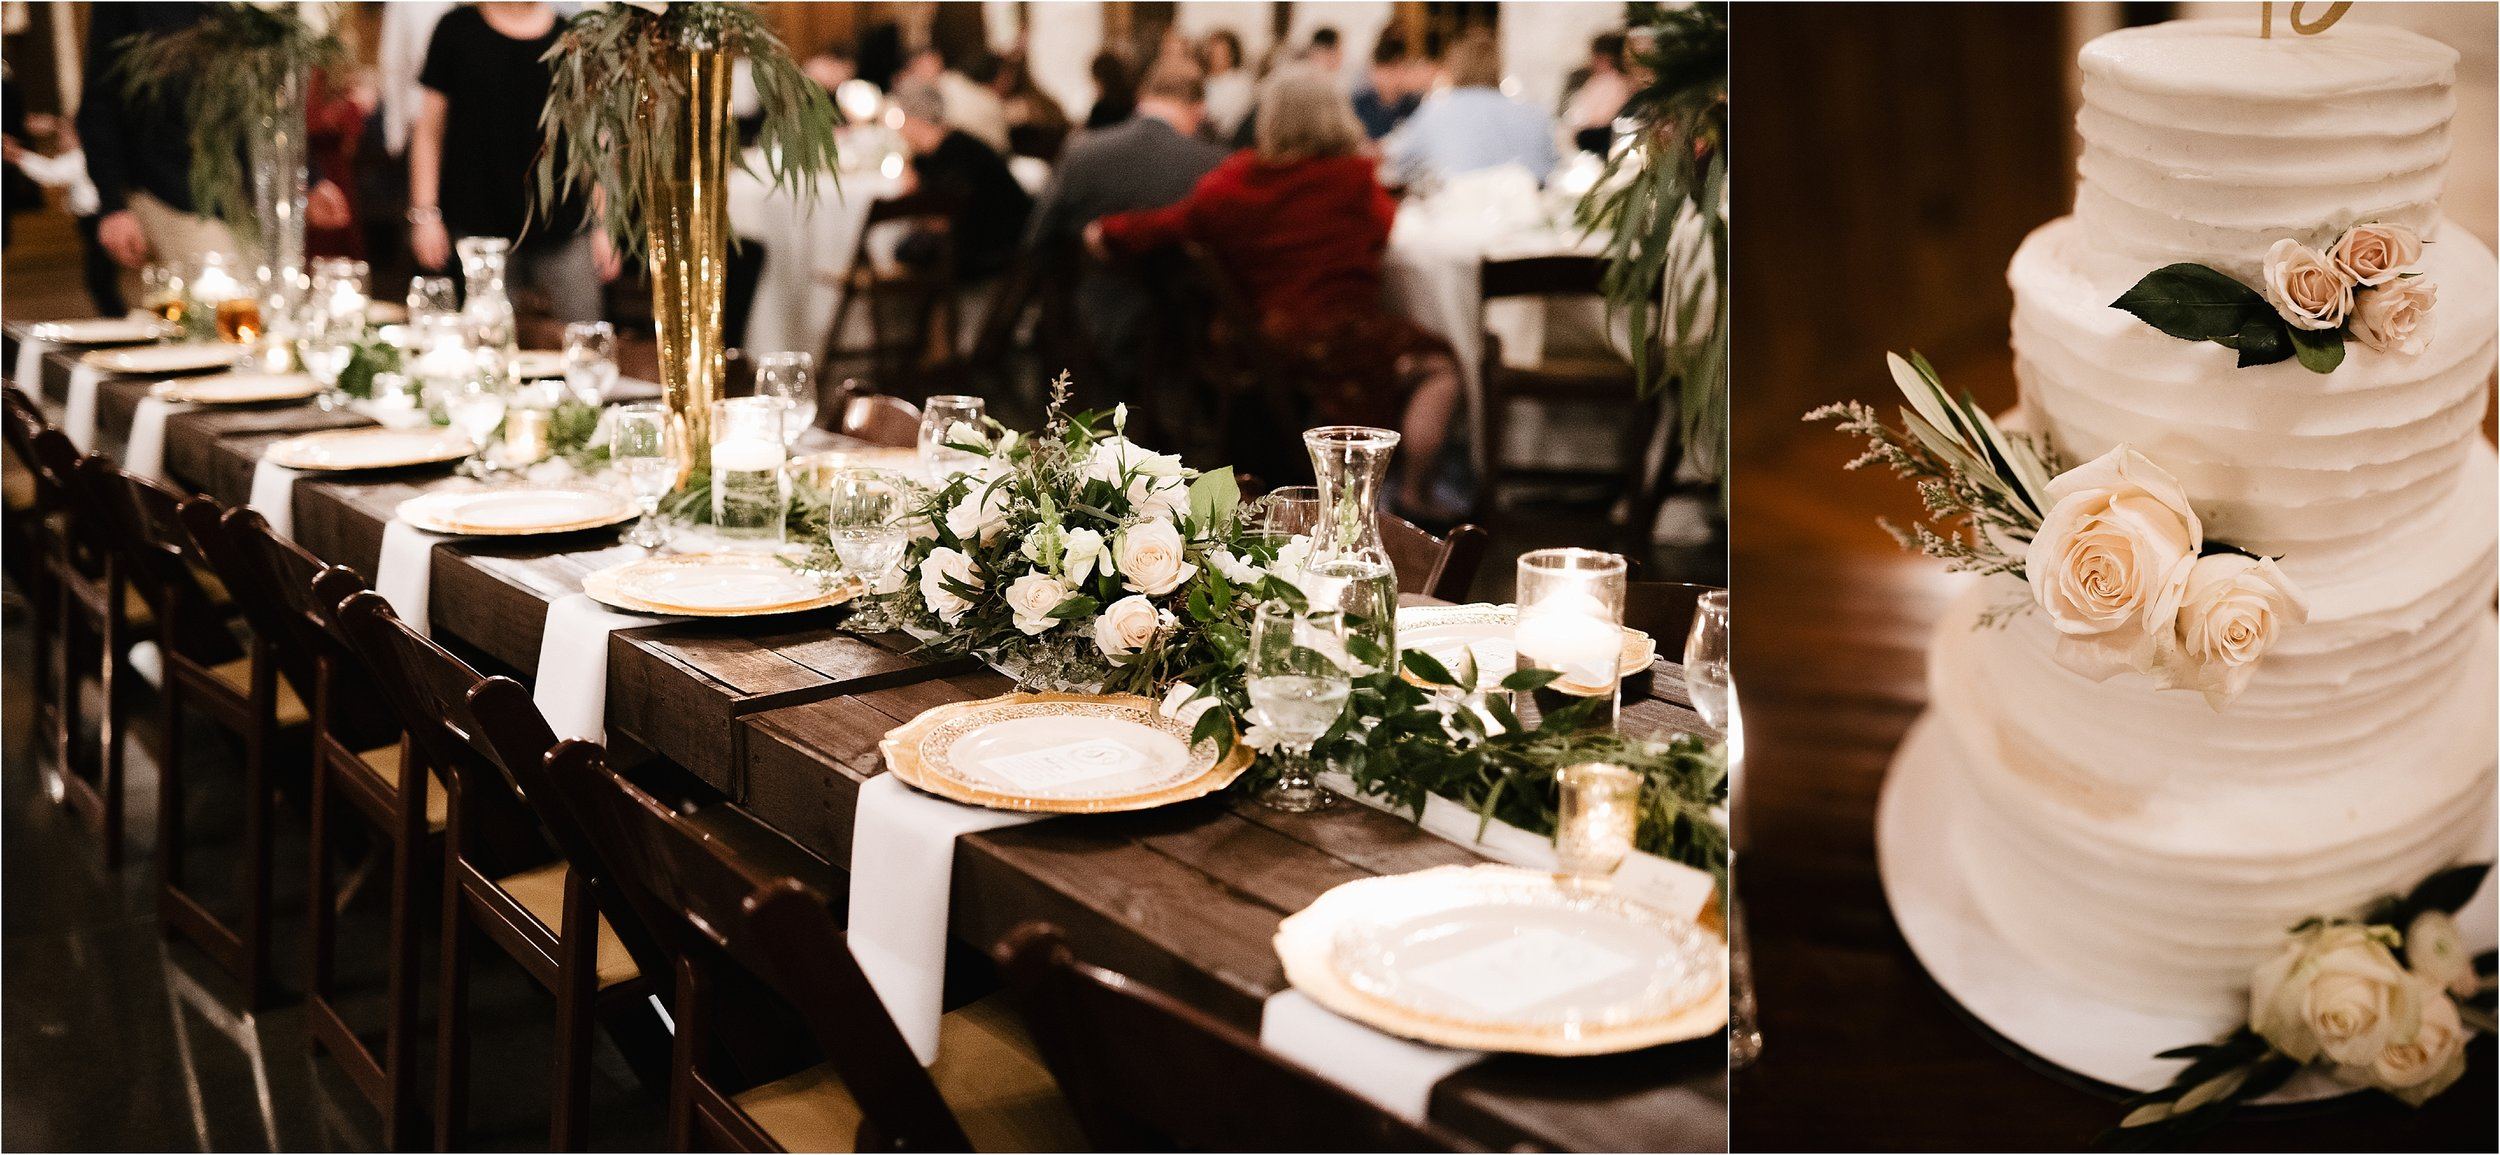 wedding photographer oklahoma reception the springs norman okc reception table settings decor decorations centerpieces florals flowers candles cake